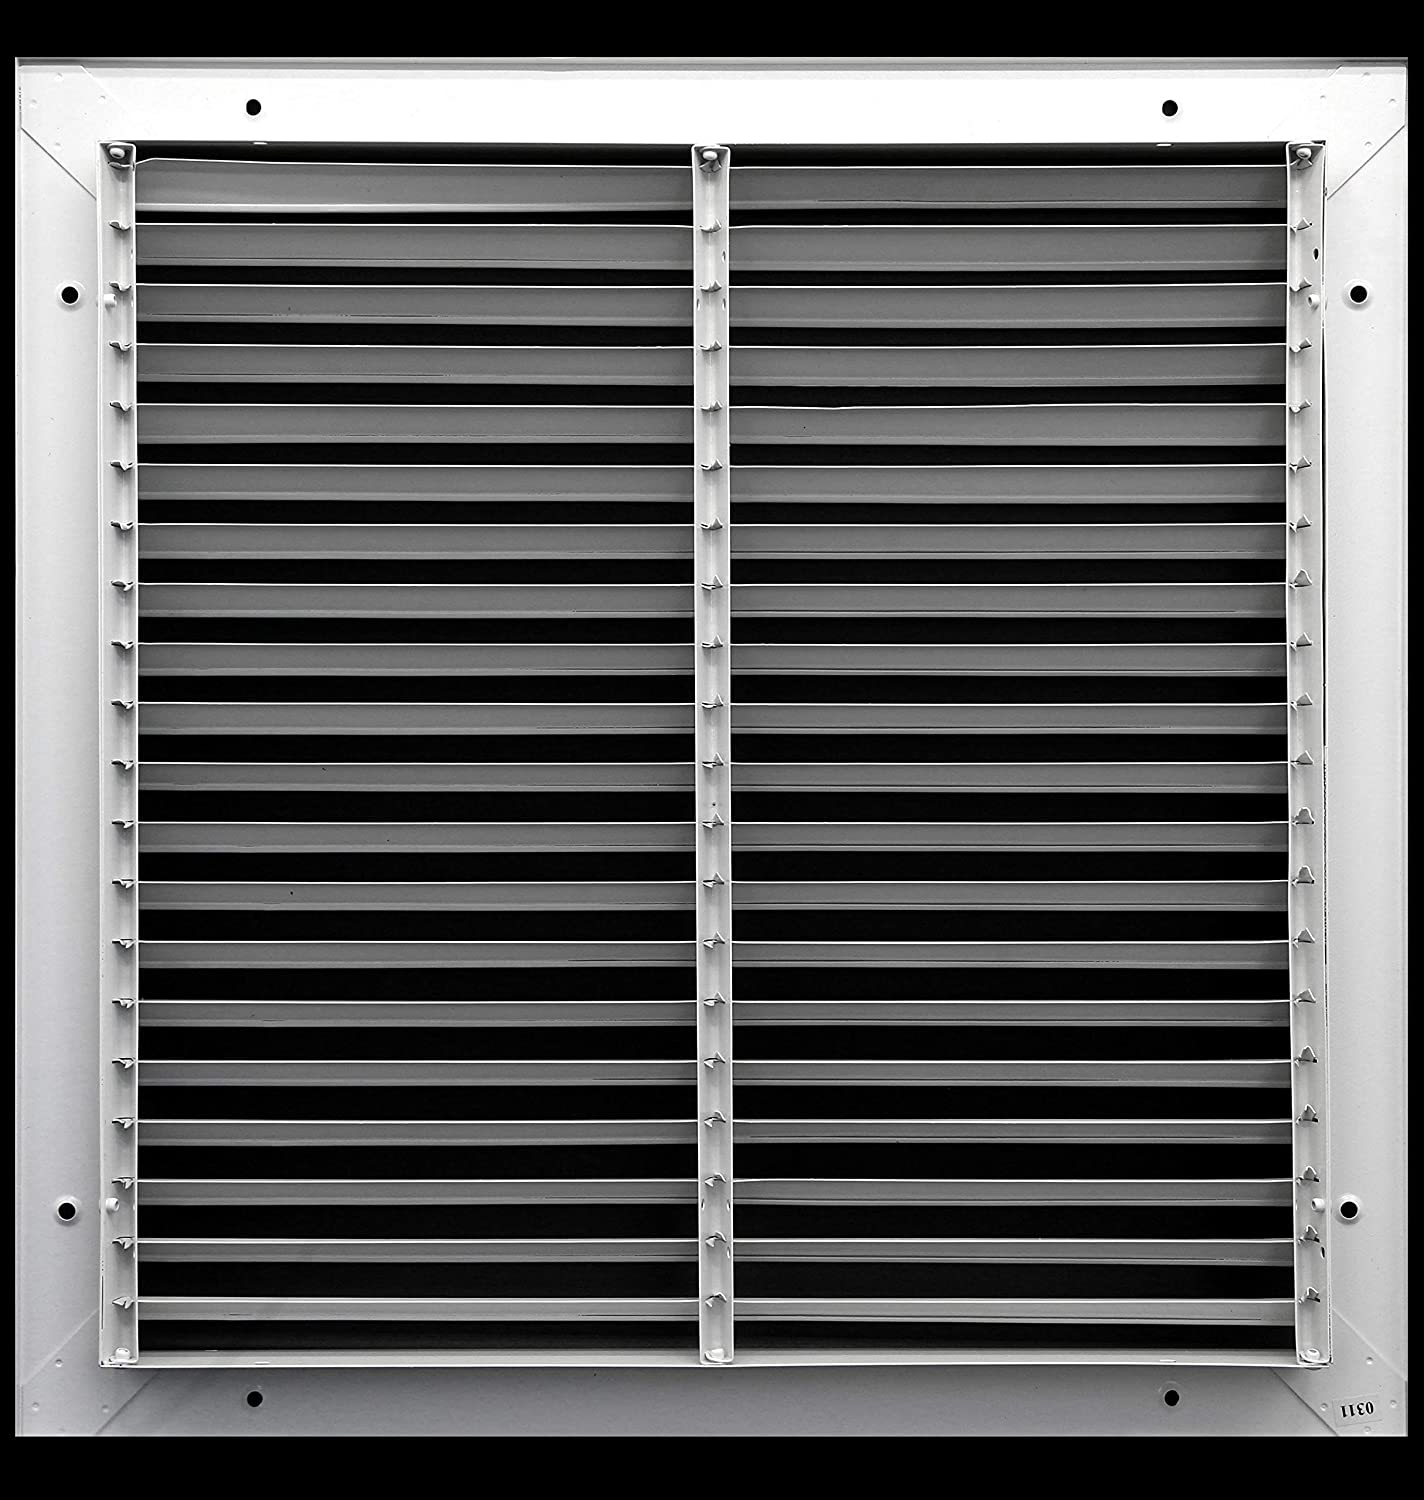 Outer Dimensions: 13.75w X 13.75h Elegant Look /& Sturdy Finish 12 x 12 Fixed Bar Return Grille All Steel Structure HVAC Premium CECOMINOD079782